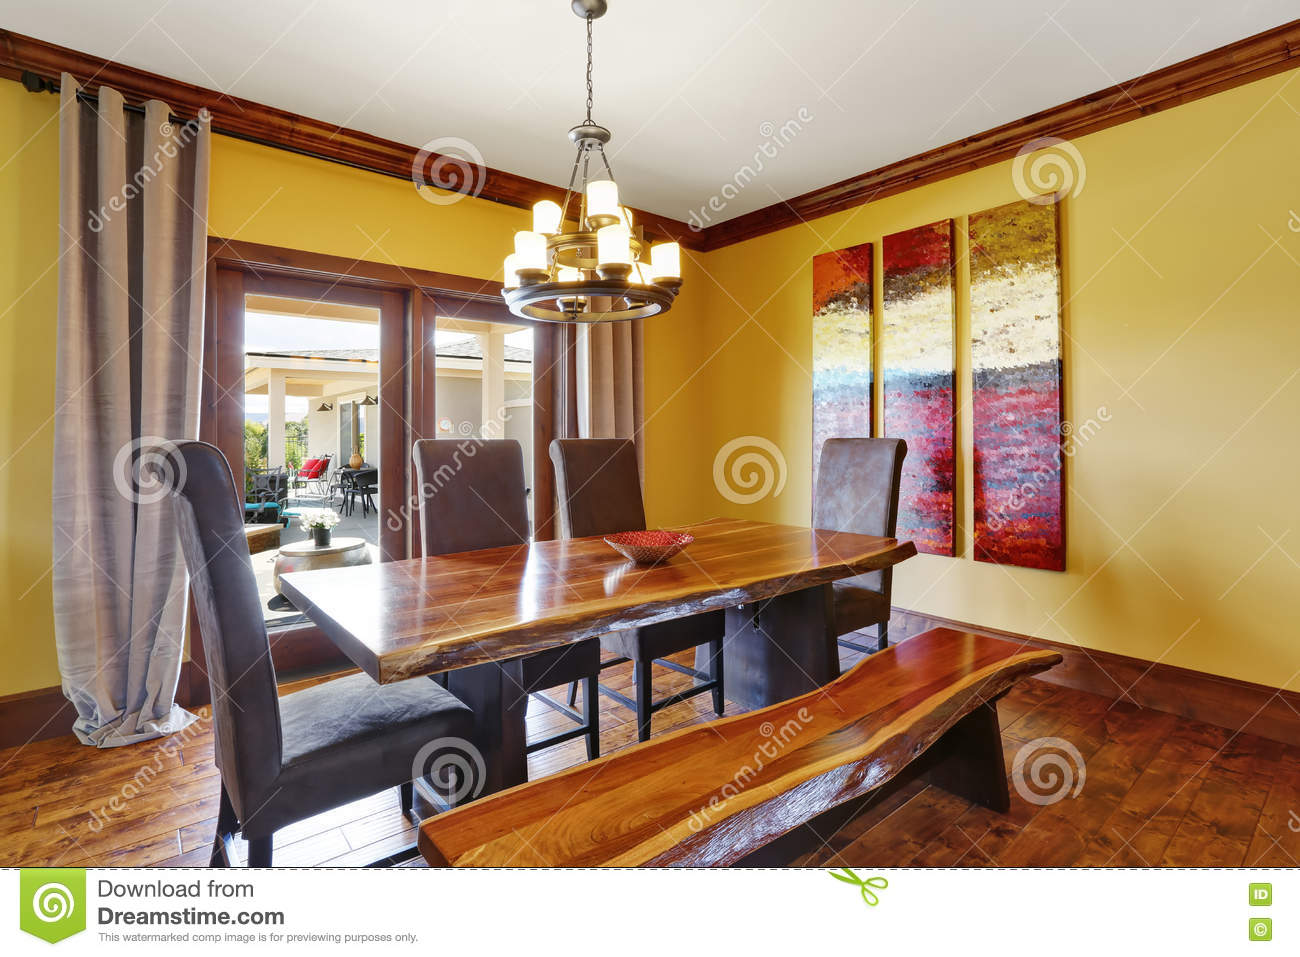 Marvelous Dining Room Interior Rustic Wooden Table Bench And High Alphanode Cool Chair Designs And Ideas Alphanodeonline